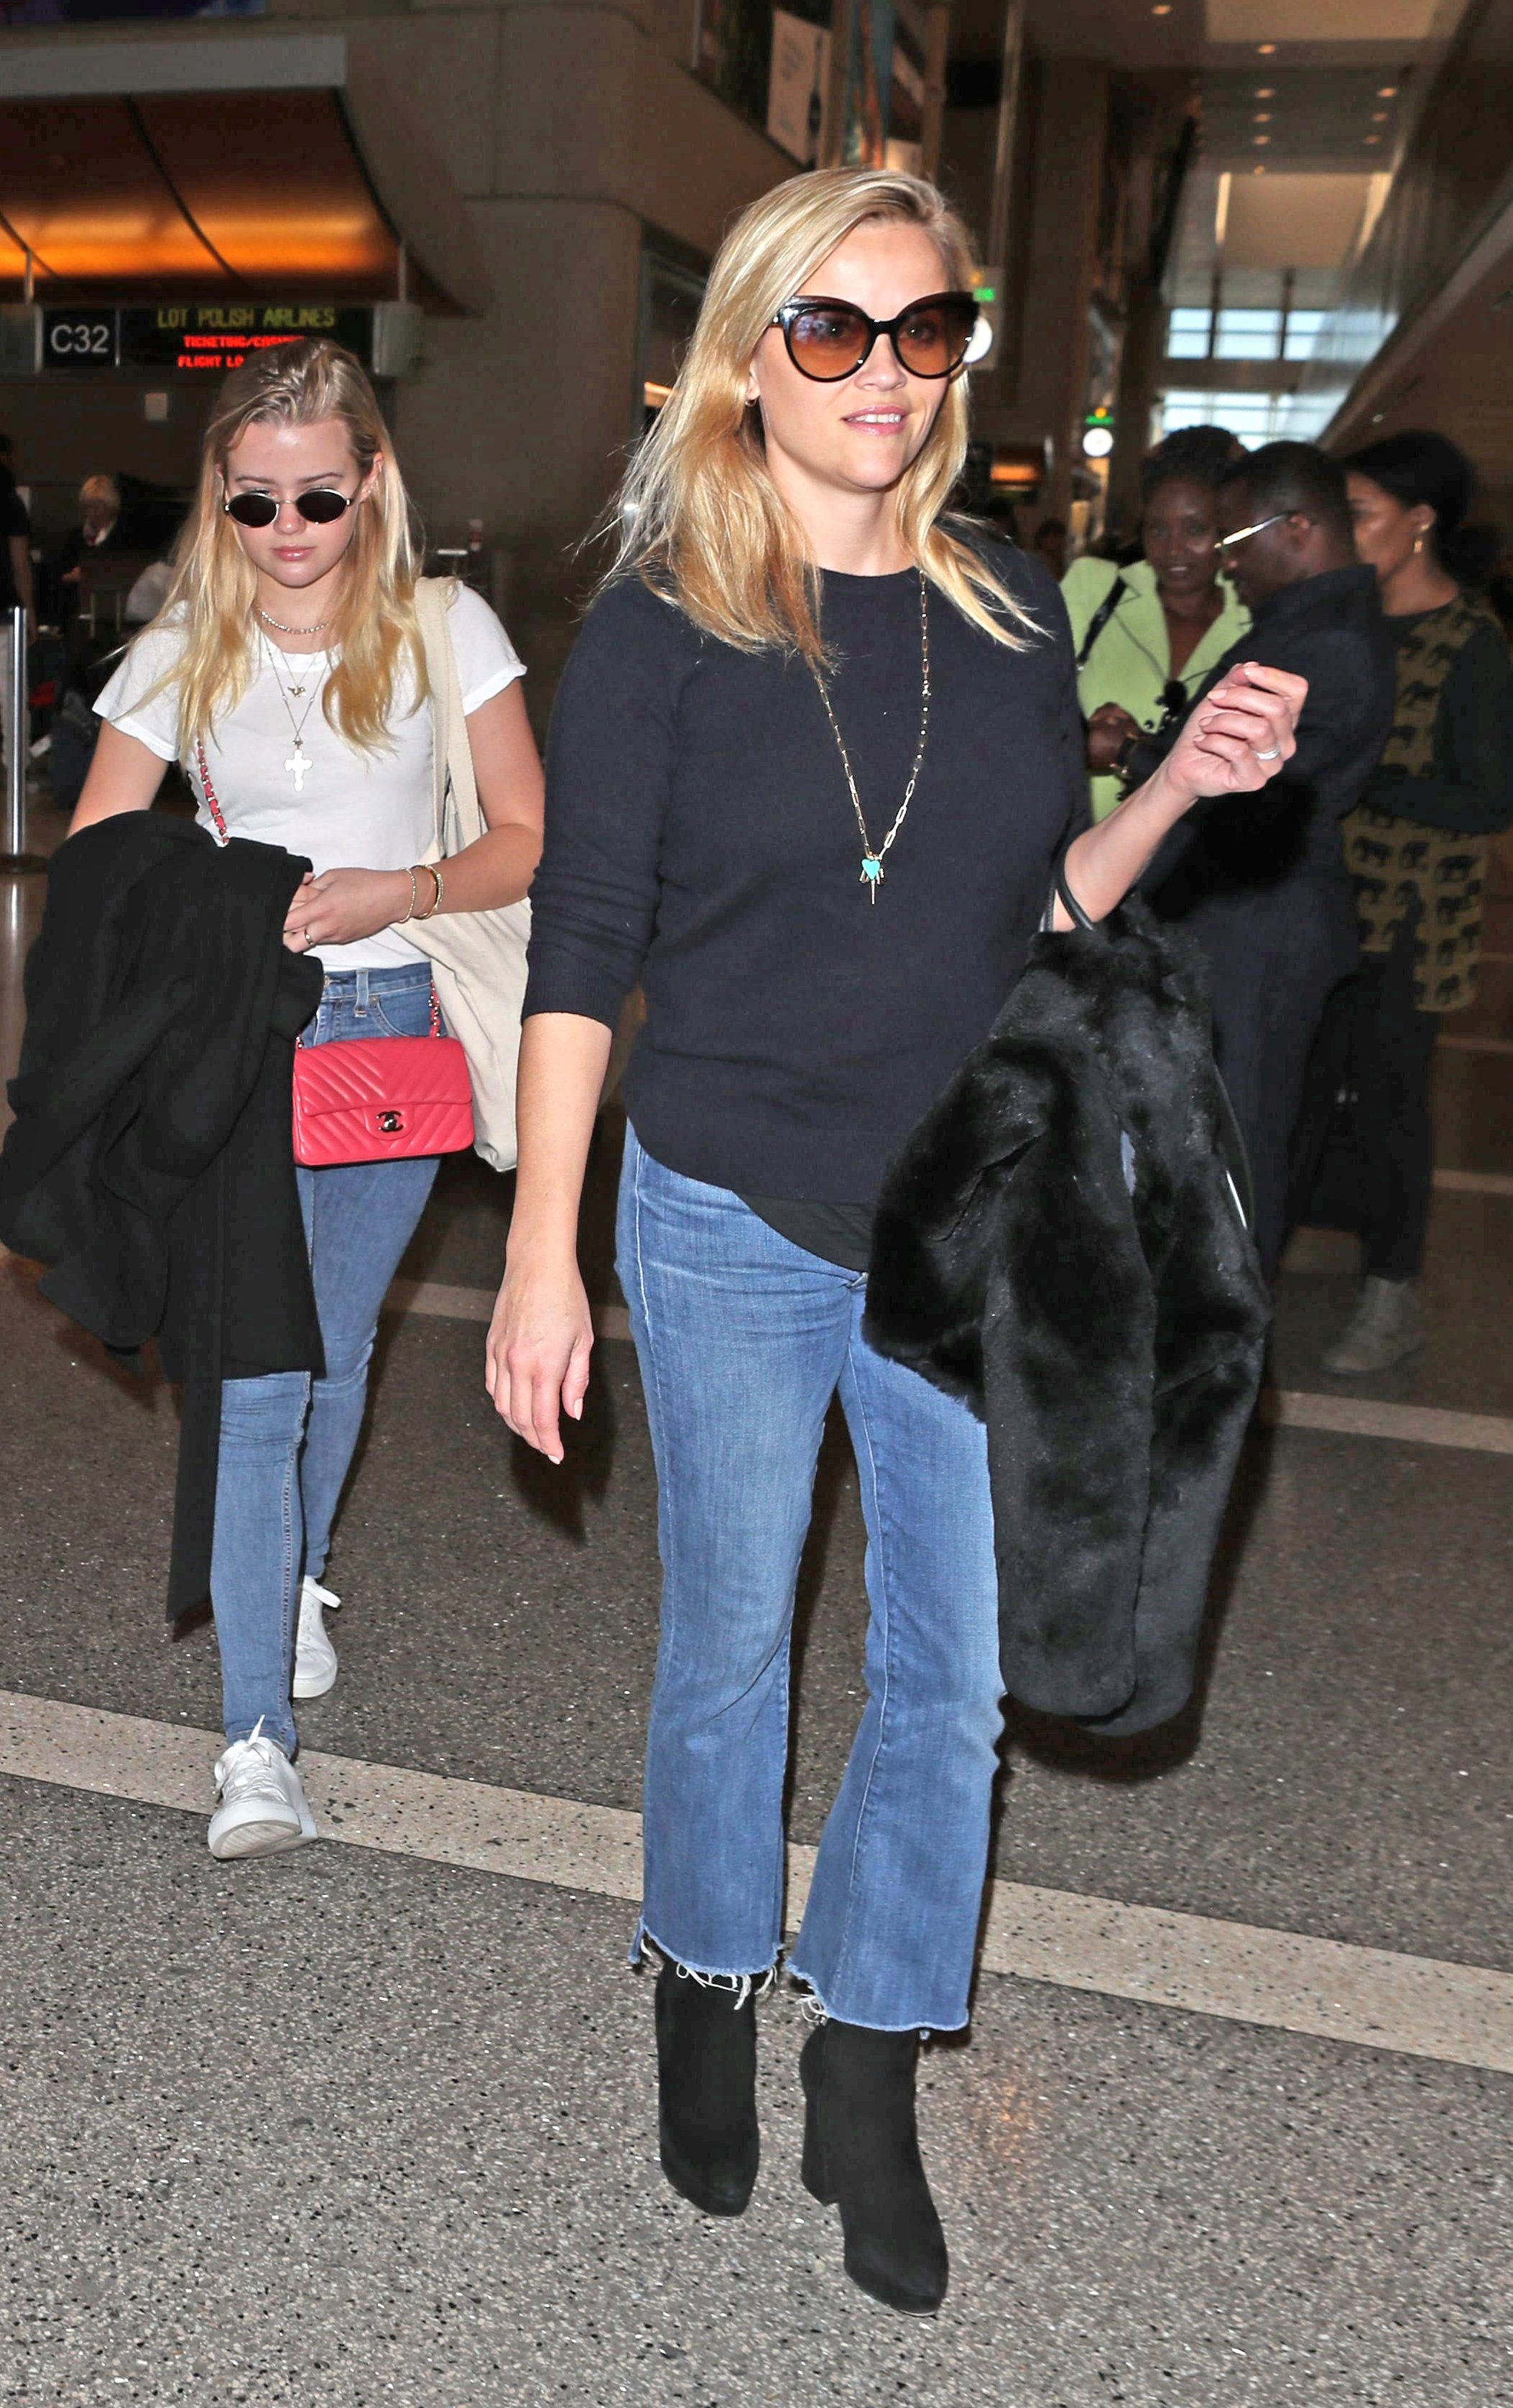 Tuesday, November 21, 2017 - Reese Witherspoon and hubby Jim Toth catch a flight out of L.A. wth their son Tennessee, and Reese's daughter Ava Phillippe headed out of town for the Thanksgiving holiday. Reese looks lovely in a casual black top, blue jeans and black ankle boots. Tennessee is super cute in a straw hat and striped tee! NICEPAPGIO/X17online.com